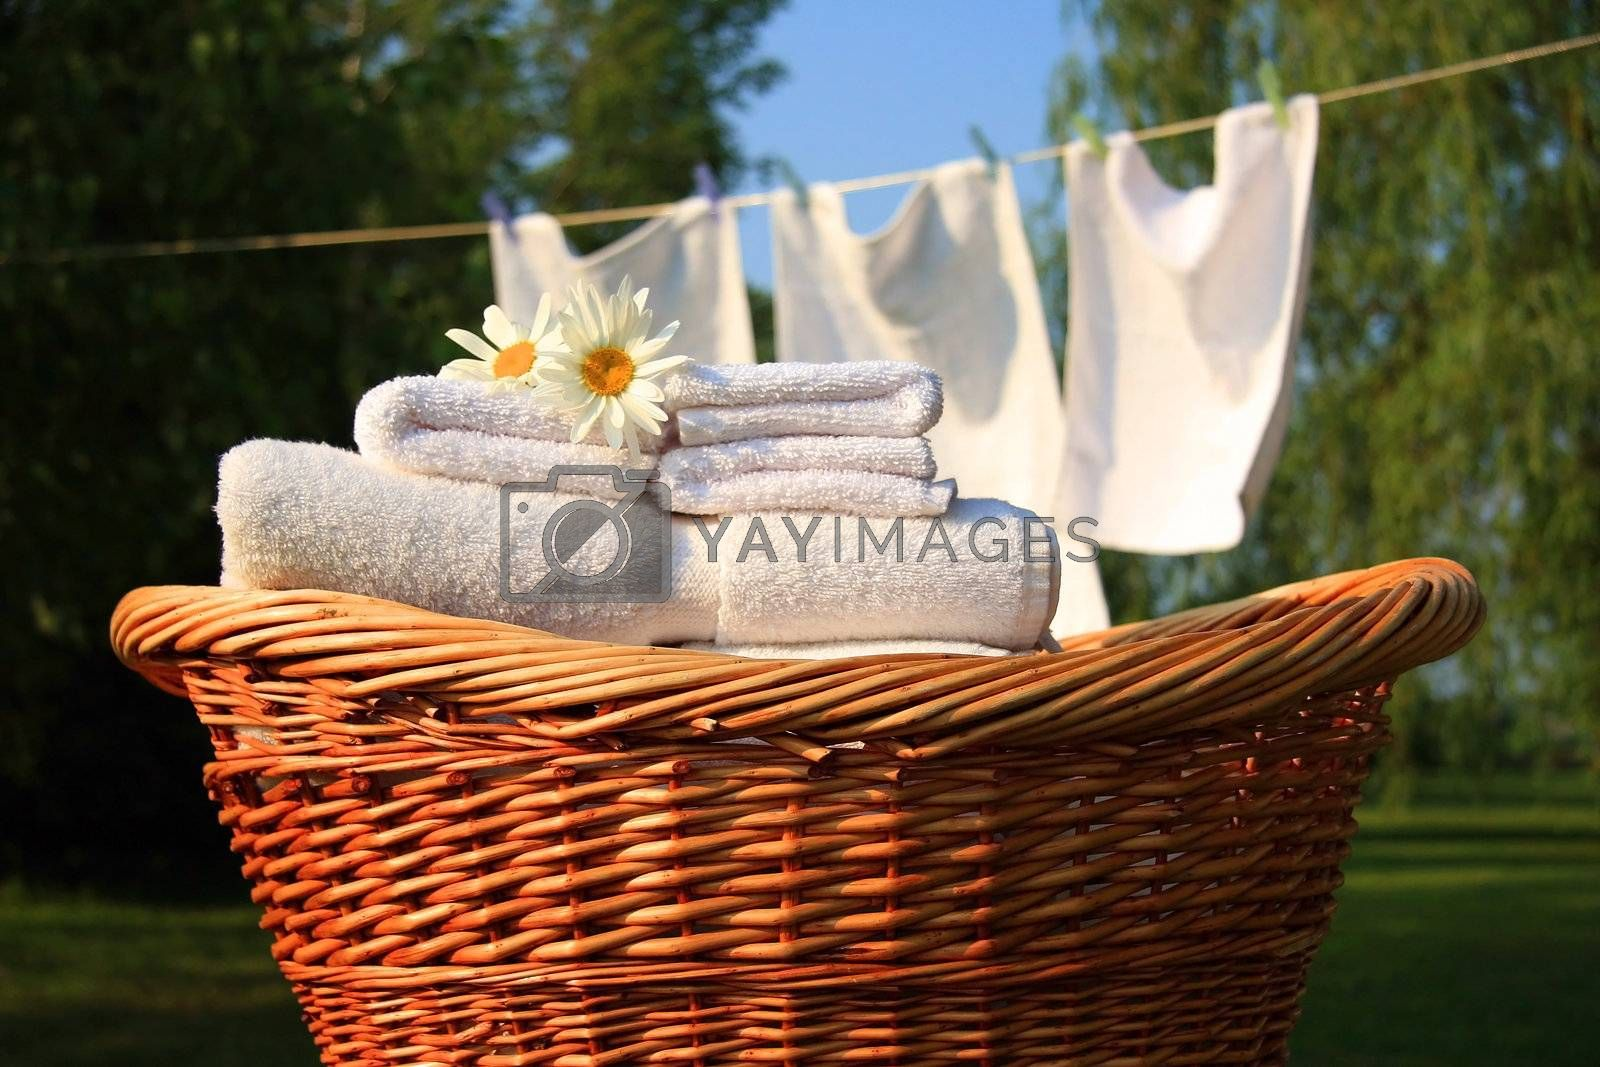 Wicker basket with laundry against a blue sky- late afternoon